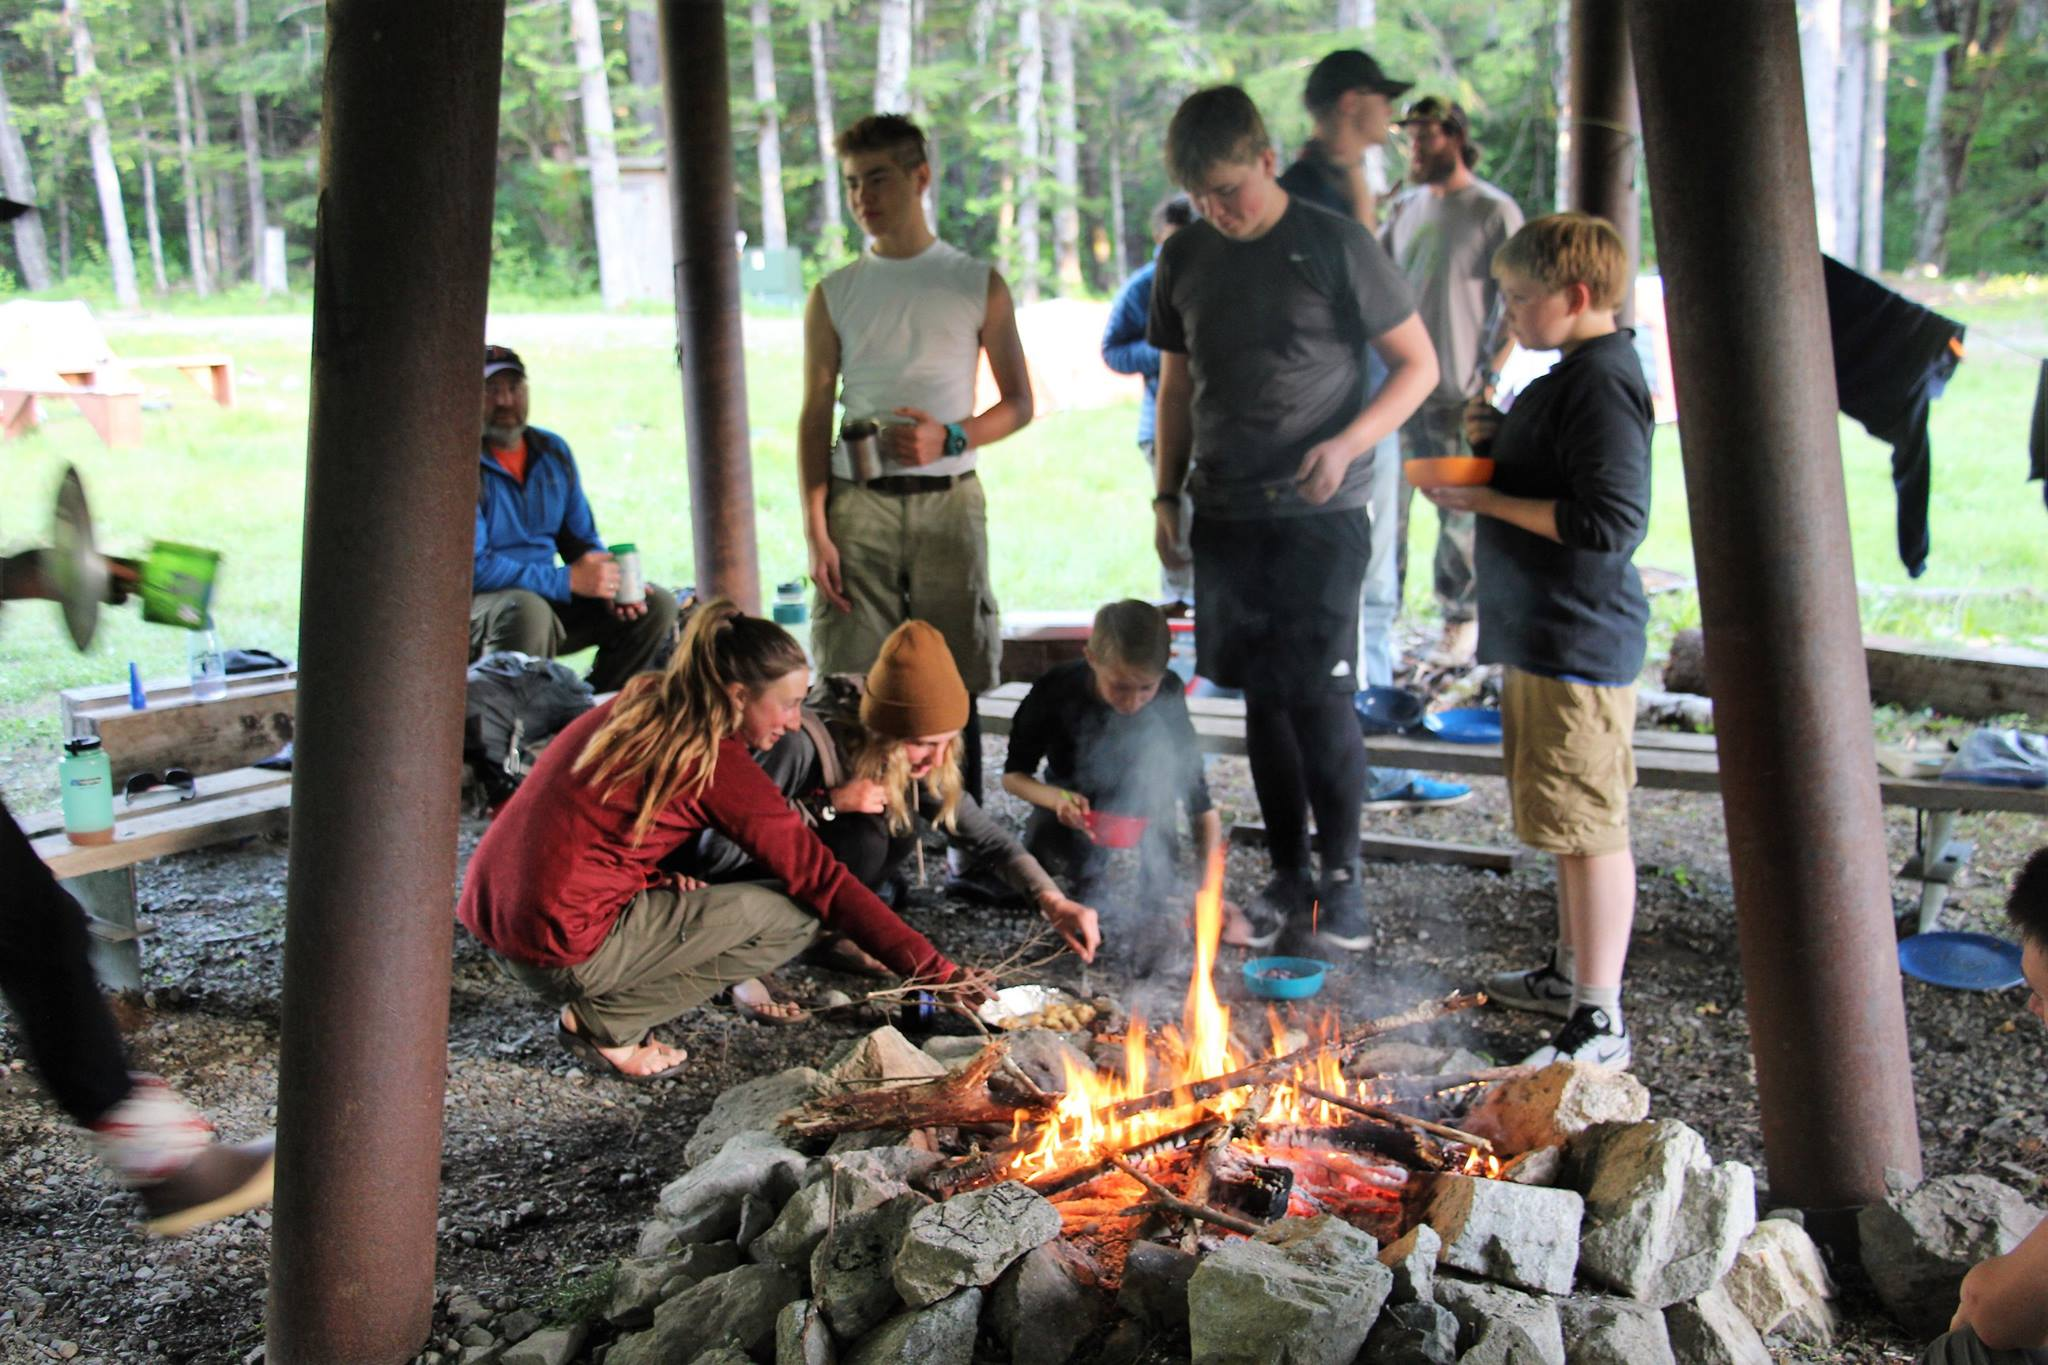 Scouts enjoy roasting smores on the adventure base's covered firepit